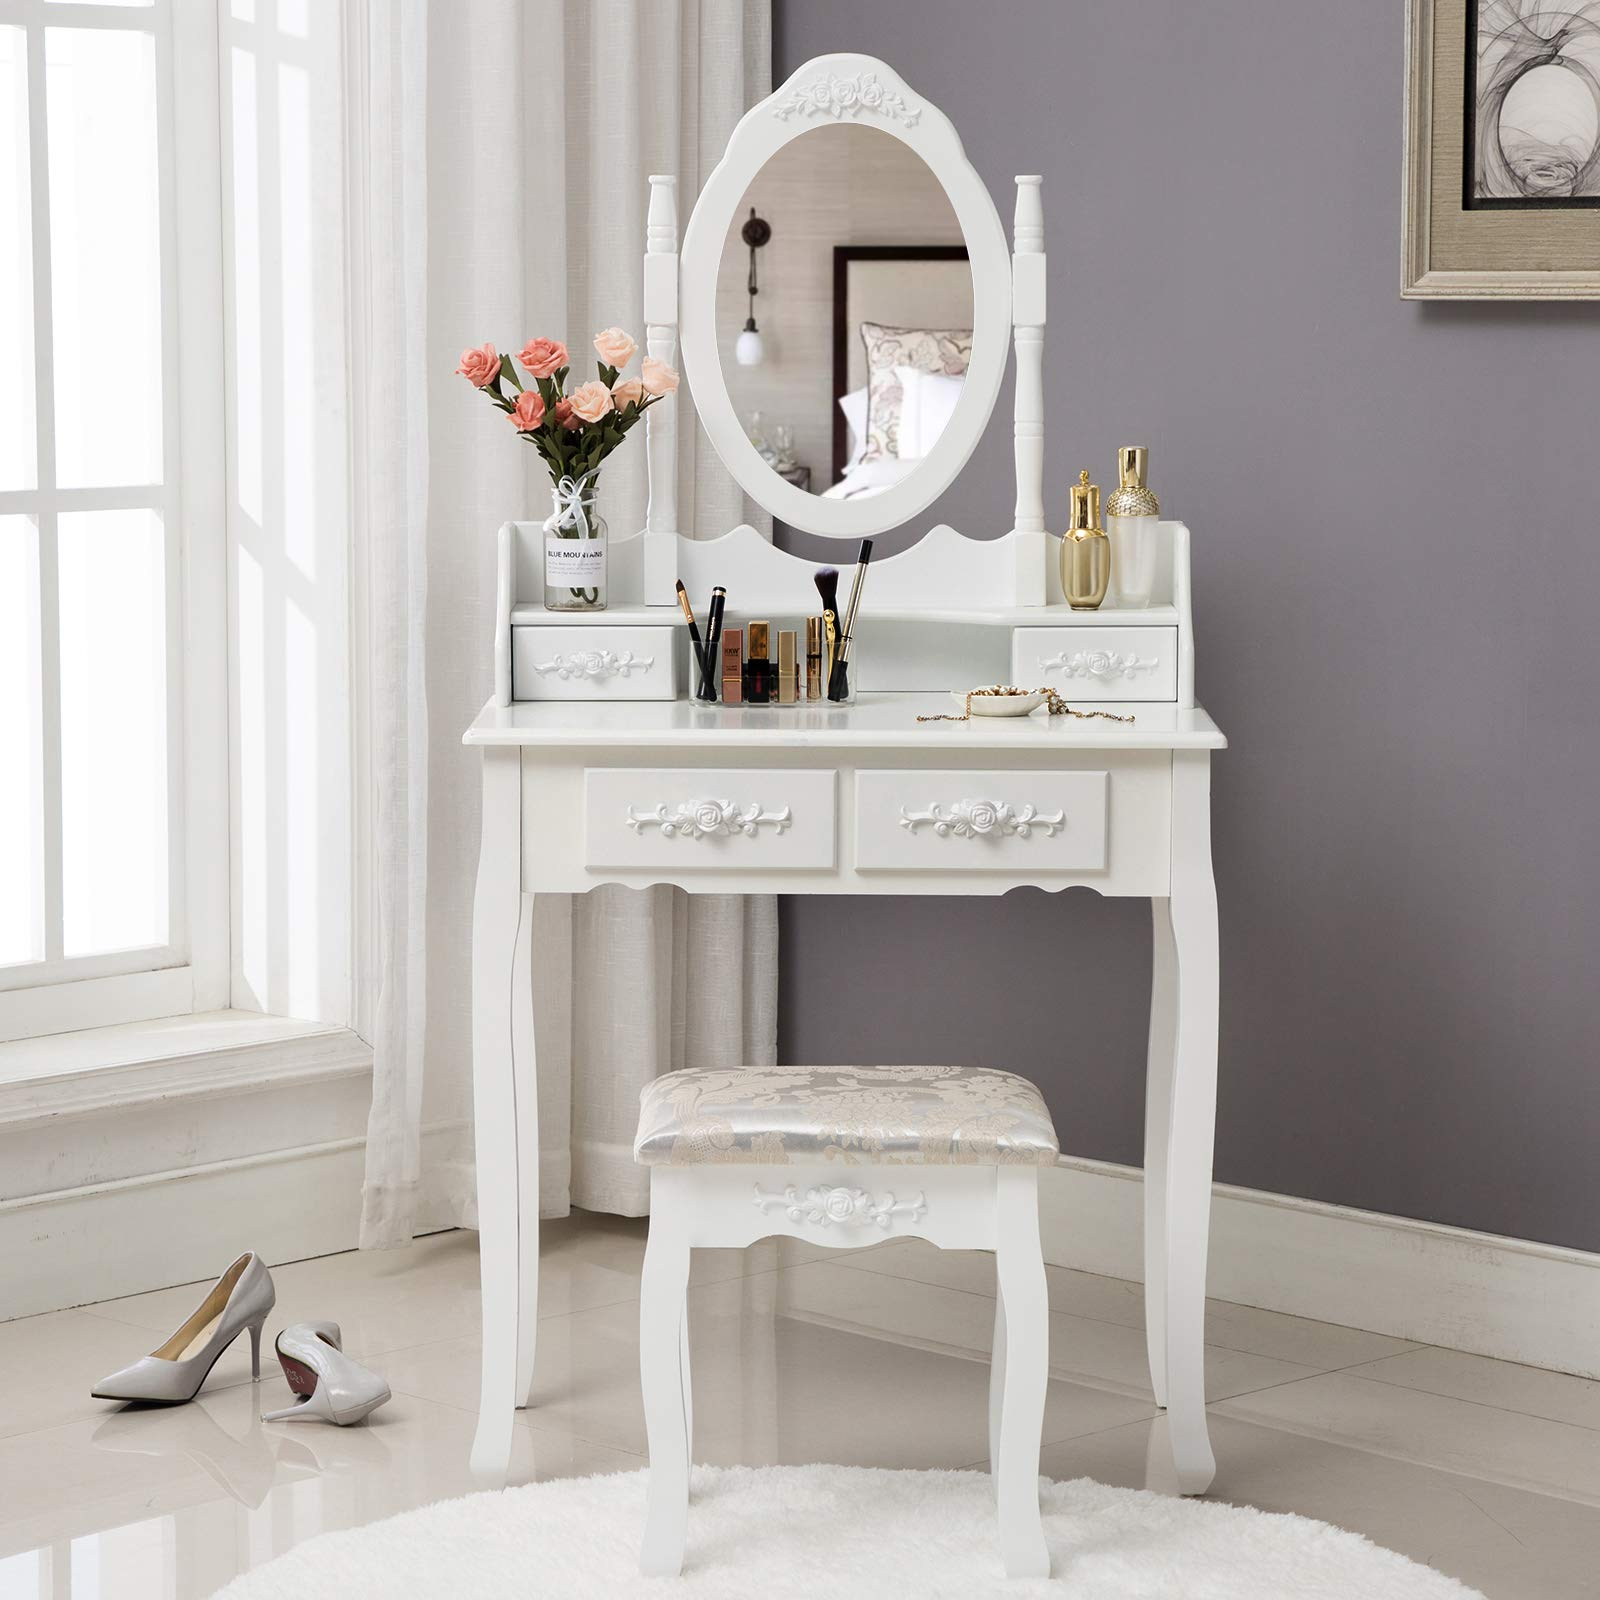 HONBAY Makeup Vanity Table Set and Cushioned Stool with Oval Mirror, 4 Drawers Dressing Table (White)